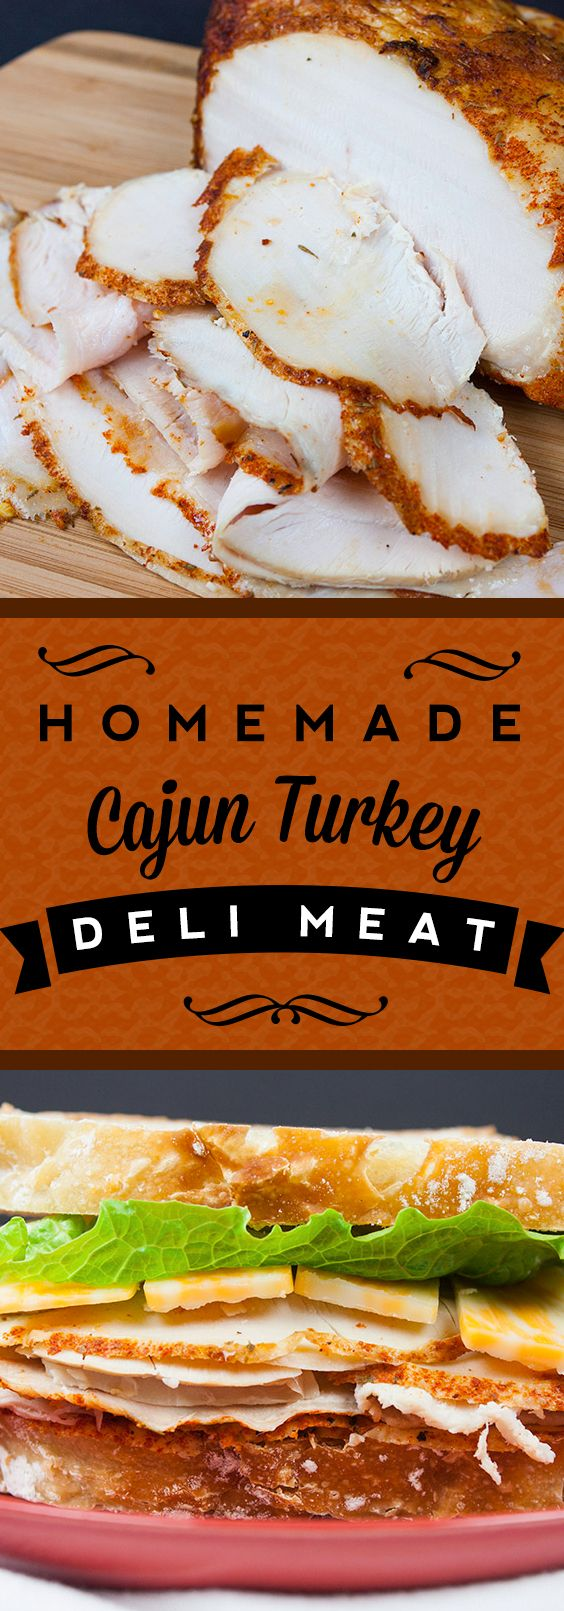 Homemade Cajun Turkey Deli Meat - You will never pay those outrageous prices again! Easy, tender and so flavorful Cajun Turkey deli meat.